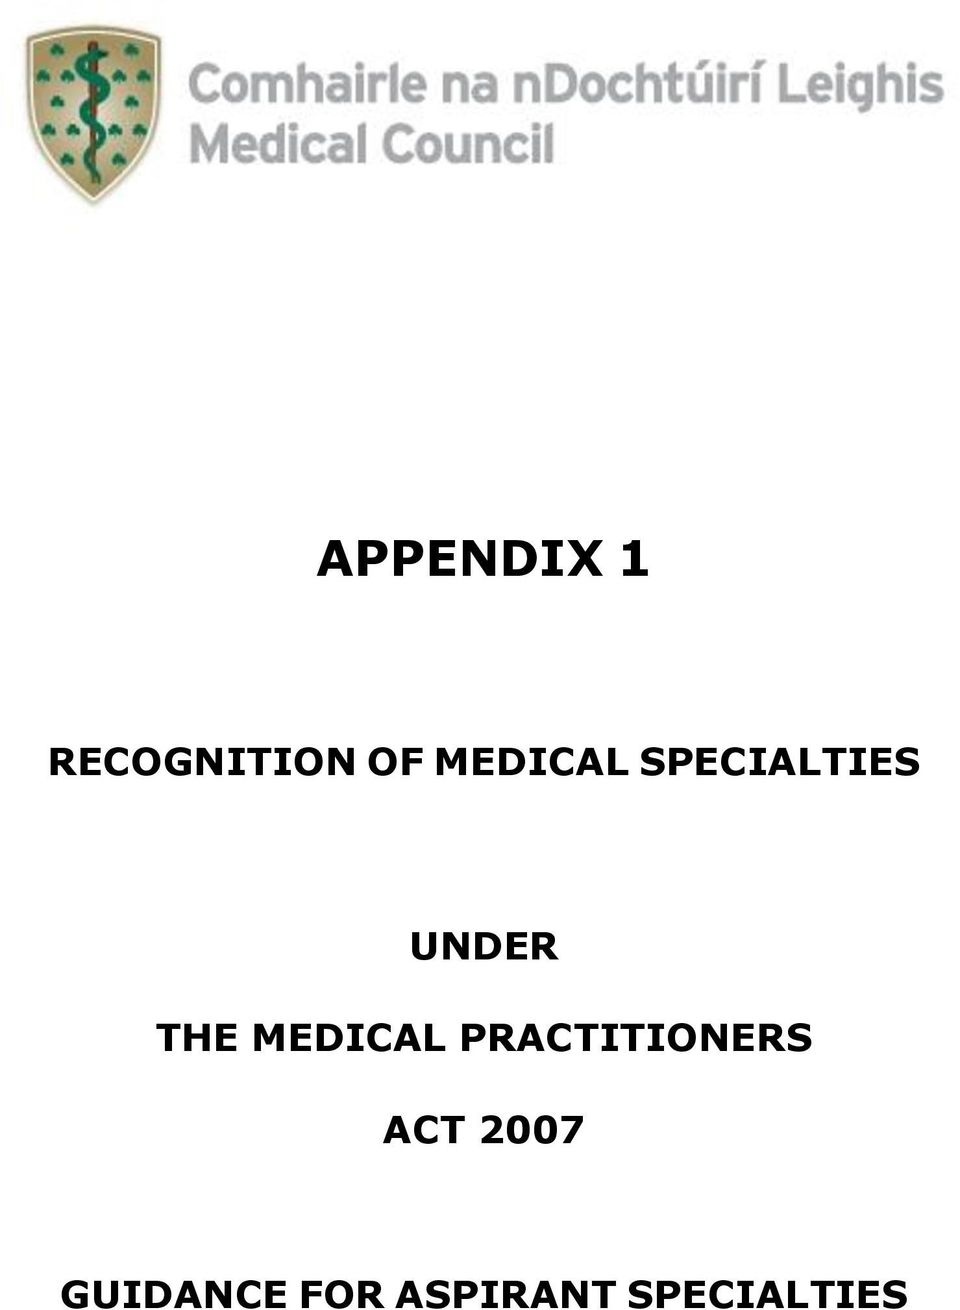 MEDICAL PRACTITIONERS ACT